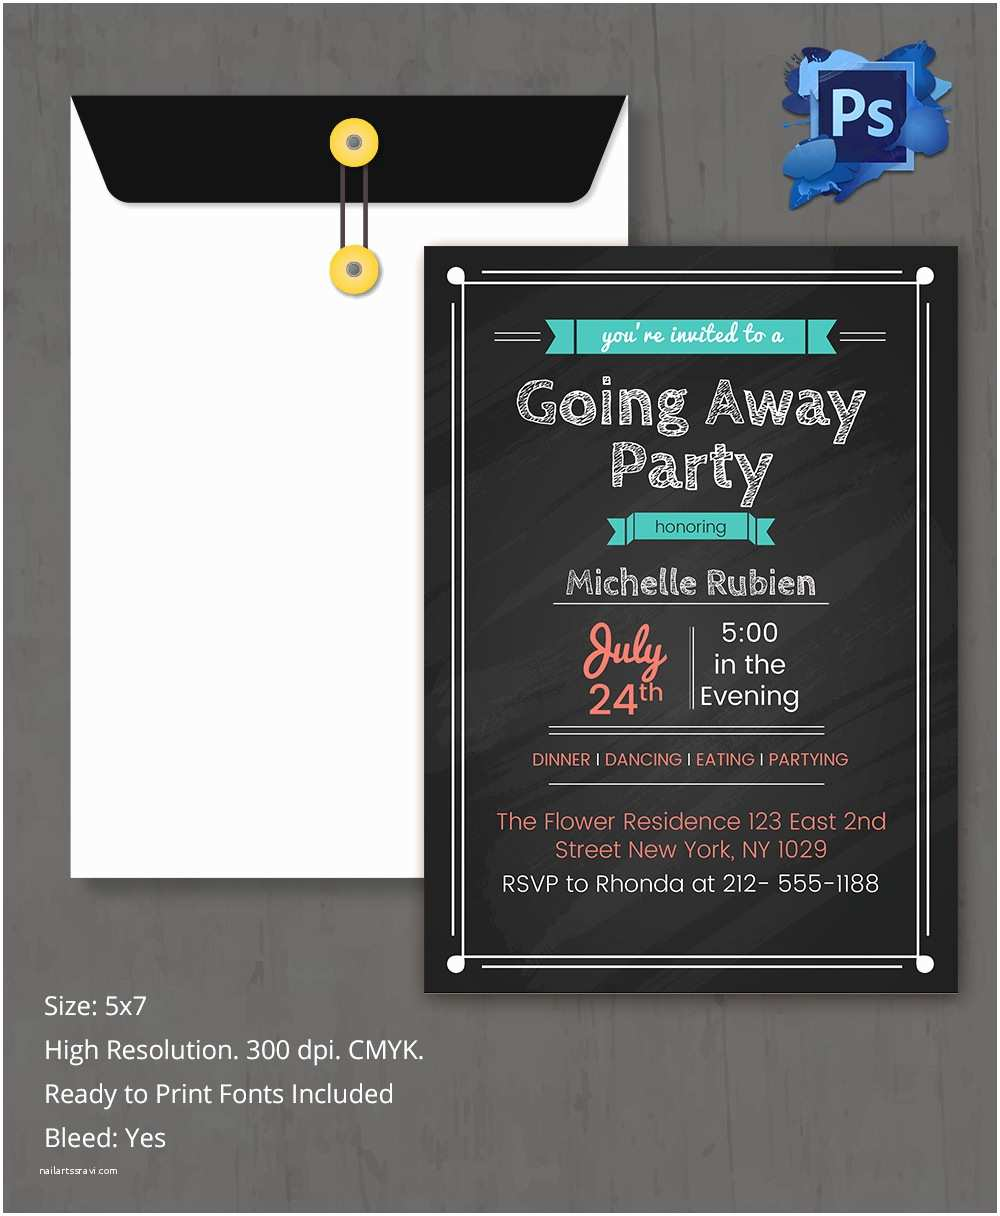 Farewell Party Invitation Template Free Farewell Party Invitation Template 26 Free Psd format